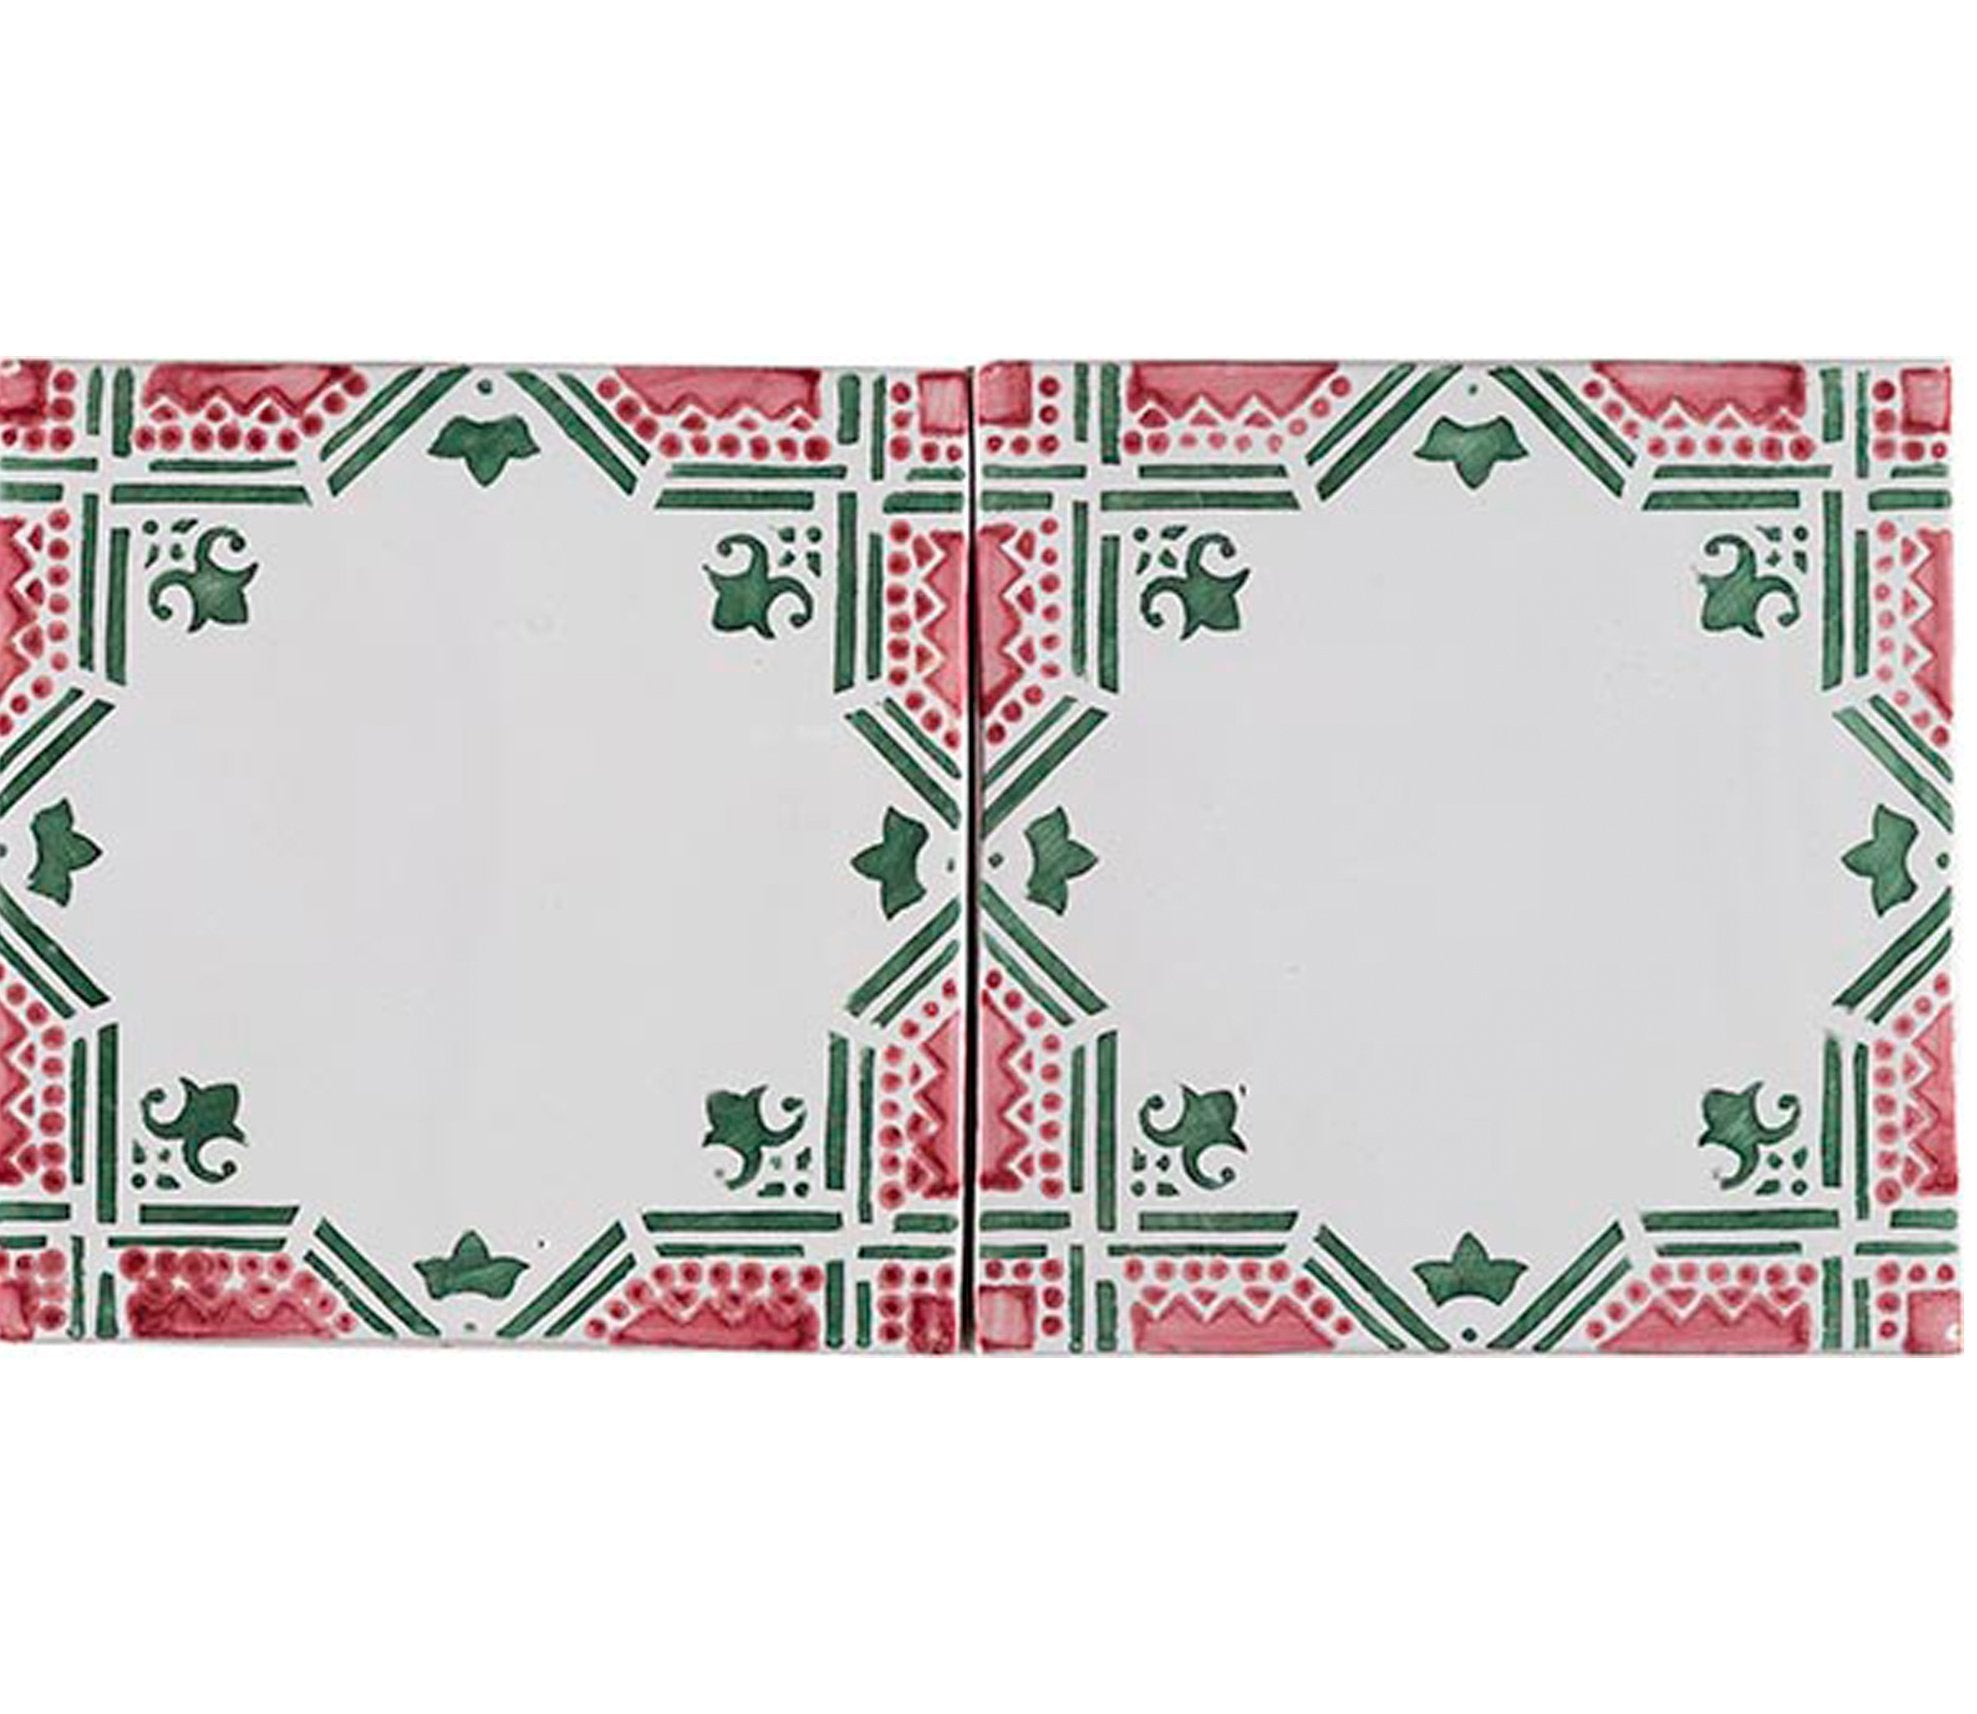 Series S Handpainted Tiles Product Image 30